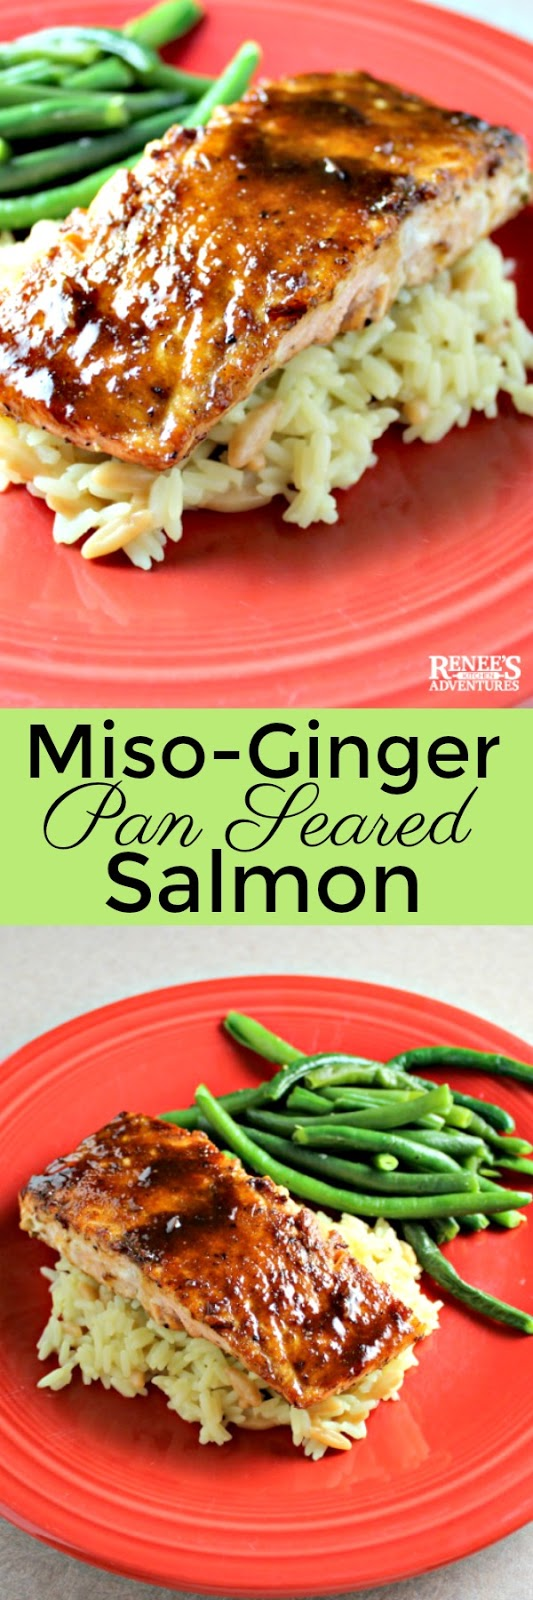 Miso-Ginger Glazed Salmon | by Renee's Kitchen Adventures - easy recipe for pan-seared salmon topped with a sweet and spicy glaze and ready for your table in about 30 minutes! Great seafood dinner menu option or great meatless choice for Lent. We love this fish! #salmon #fish #seafood #meatless